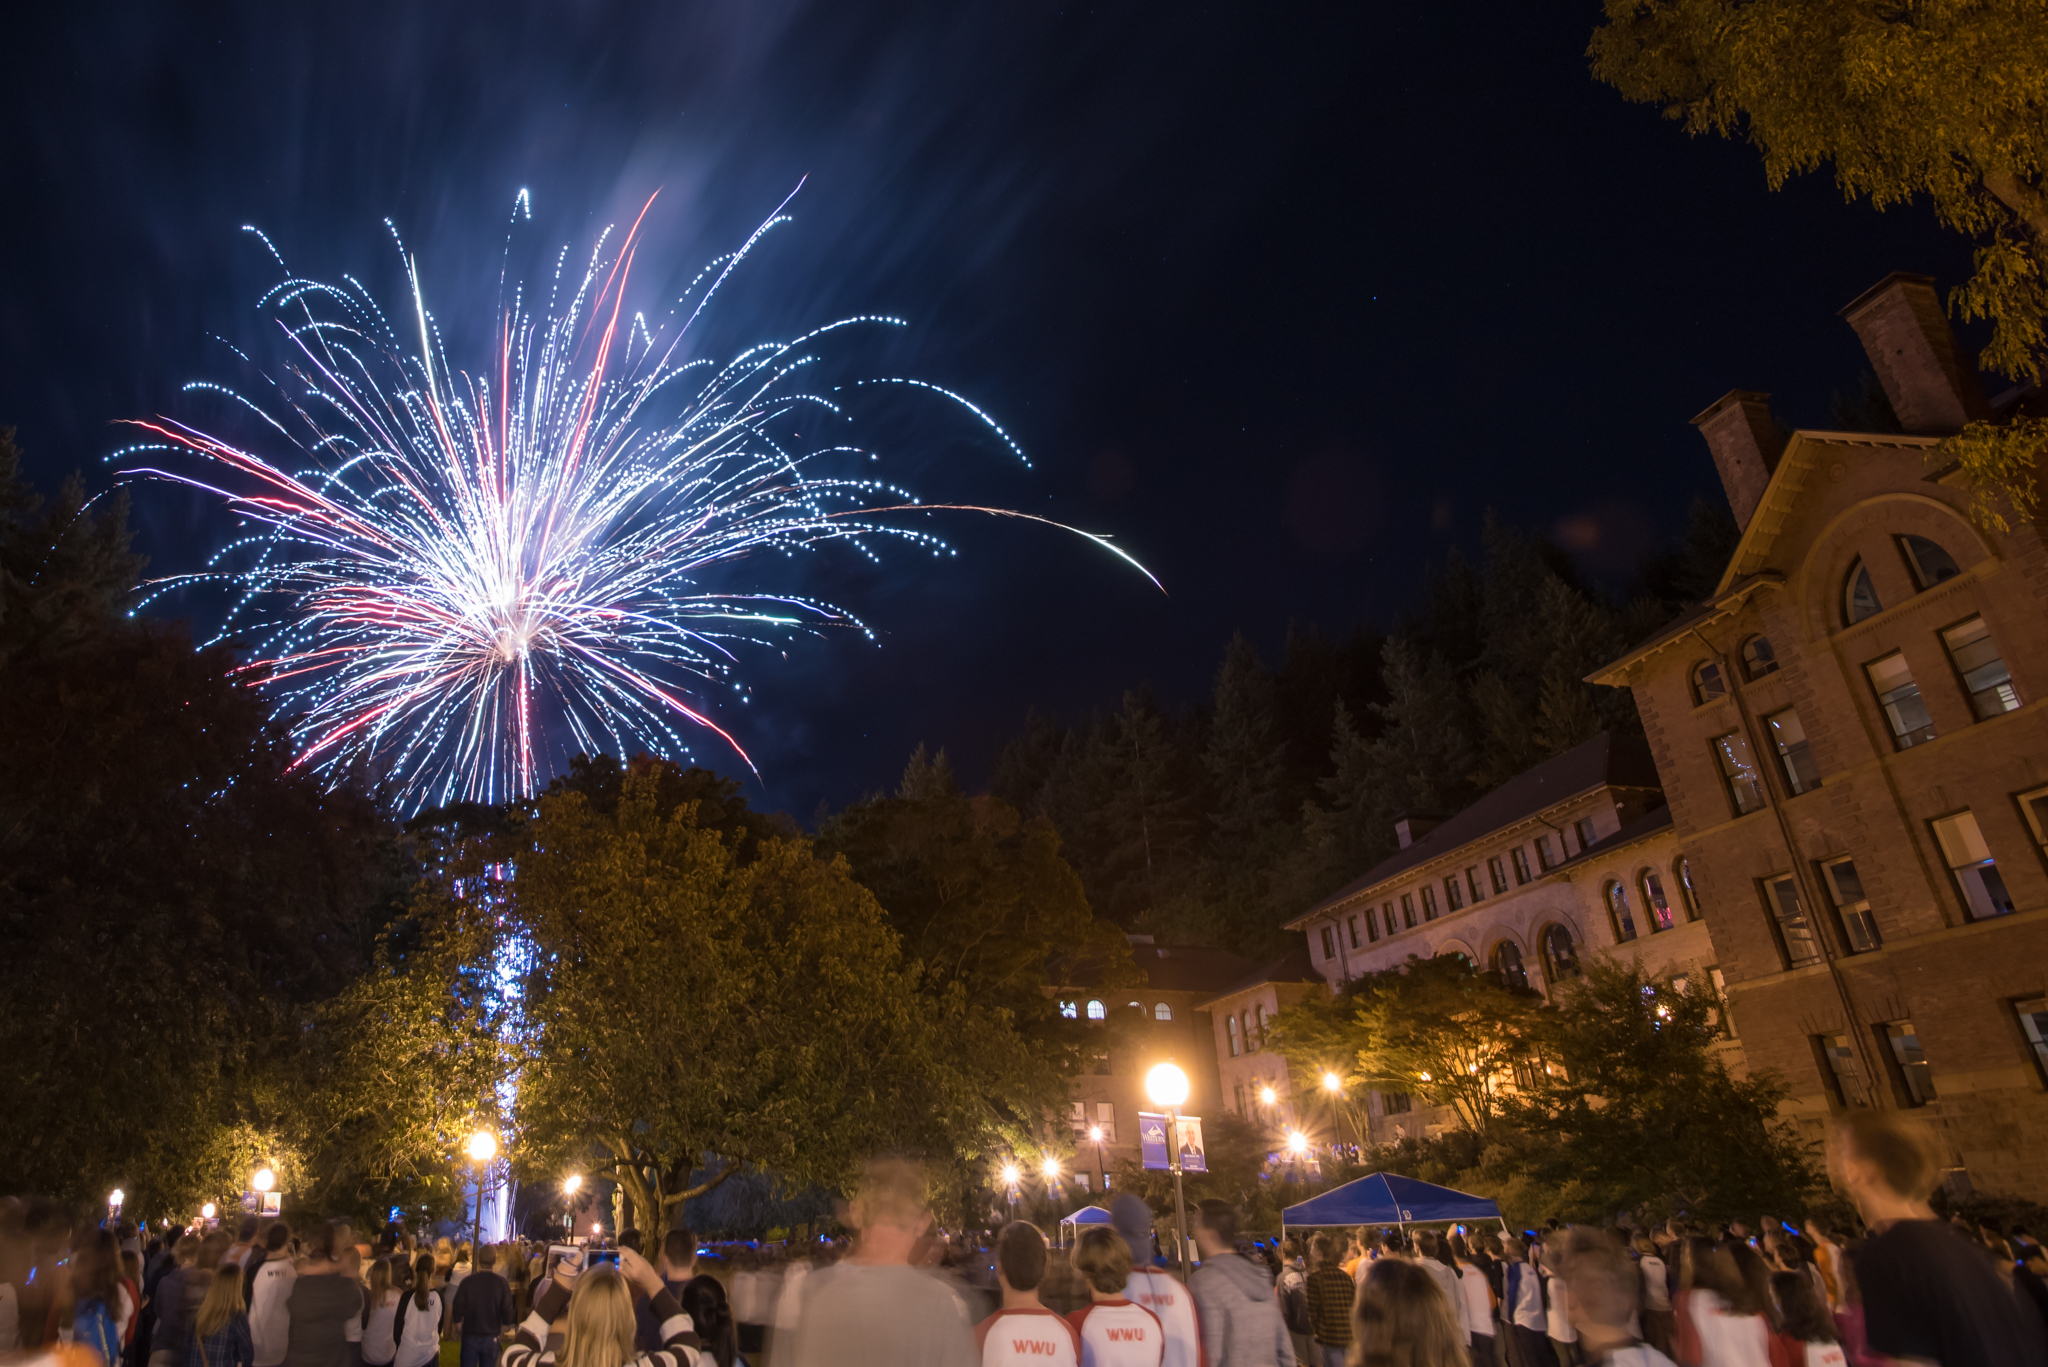 Fireworks light up the sky in front of Old Main.